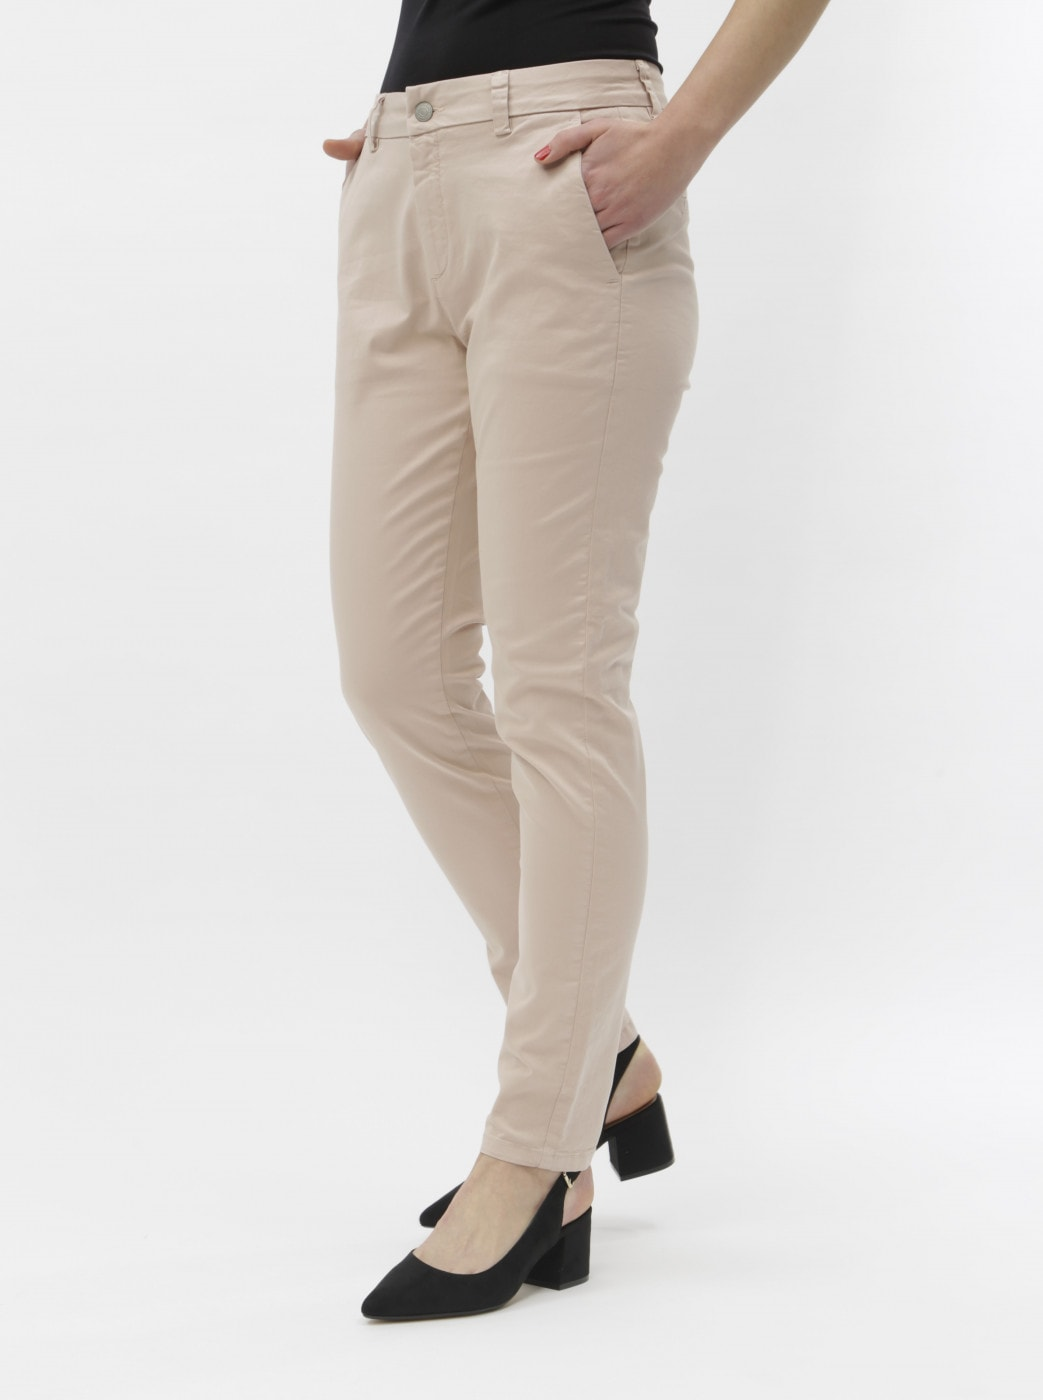 Light Pink Chino Pants Selected Femme Megan